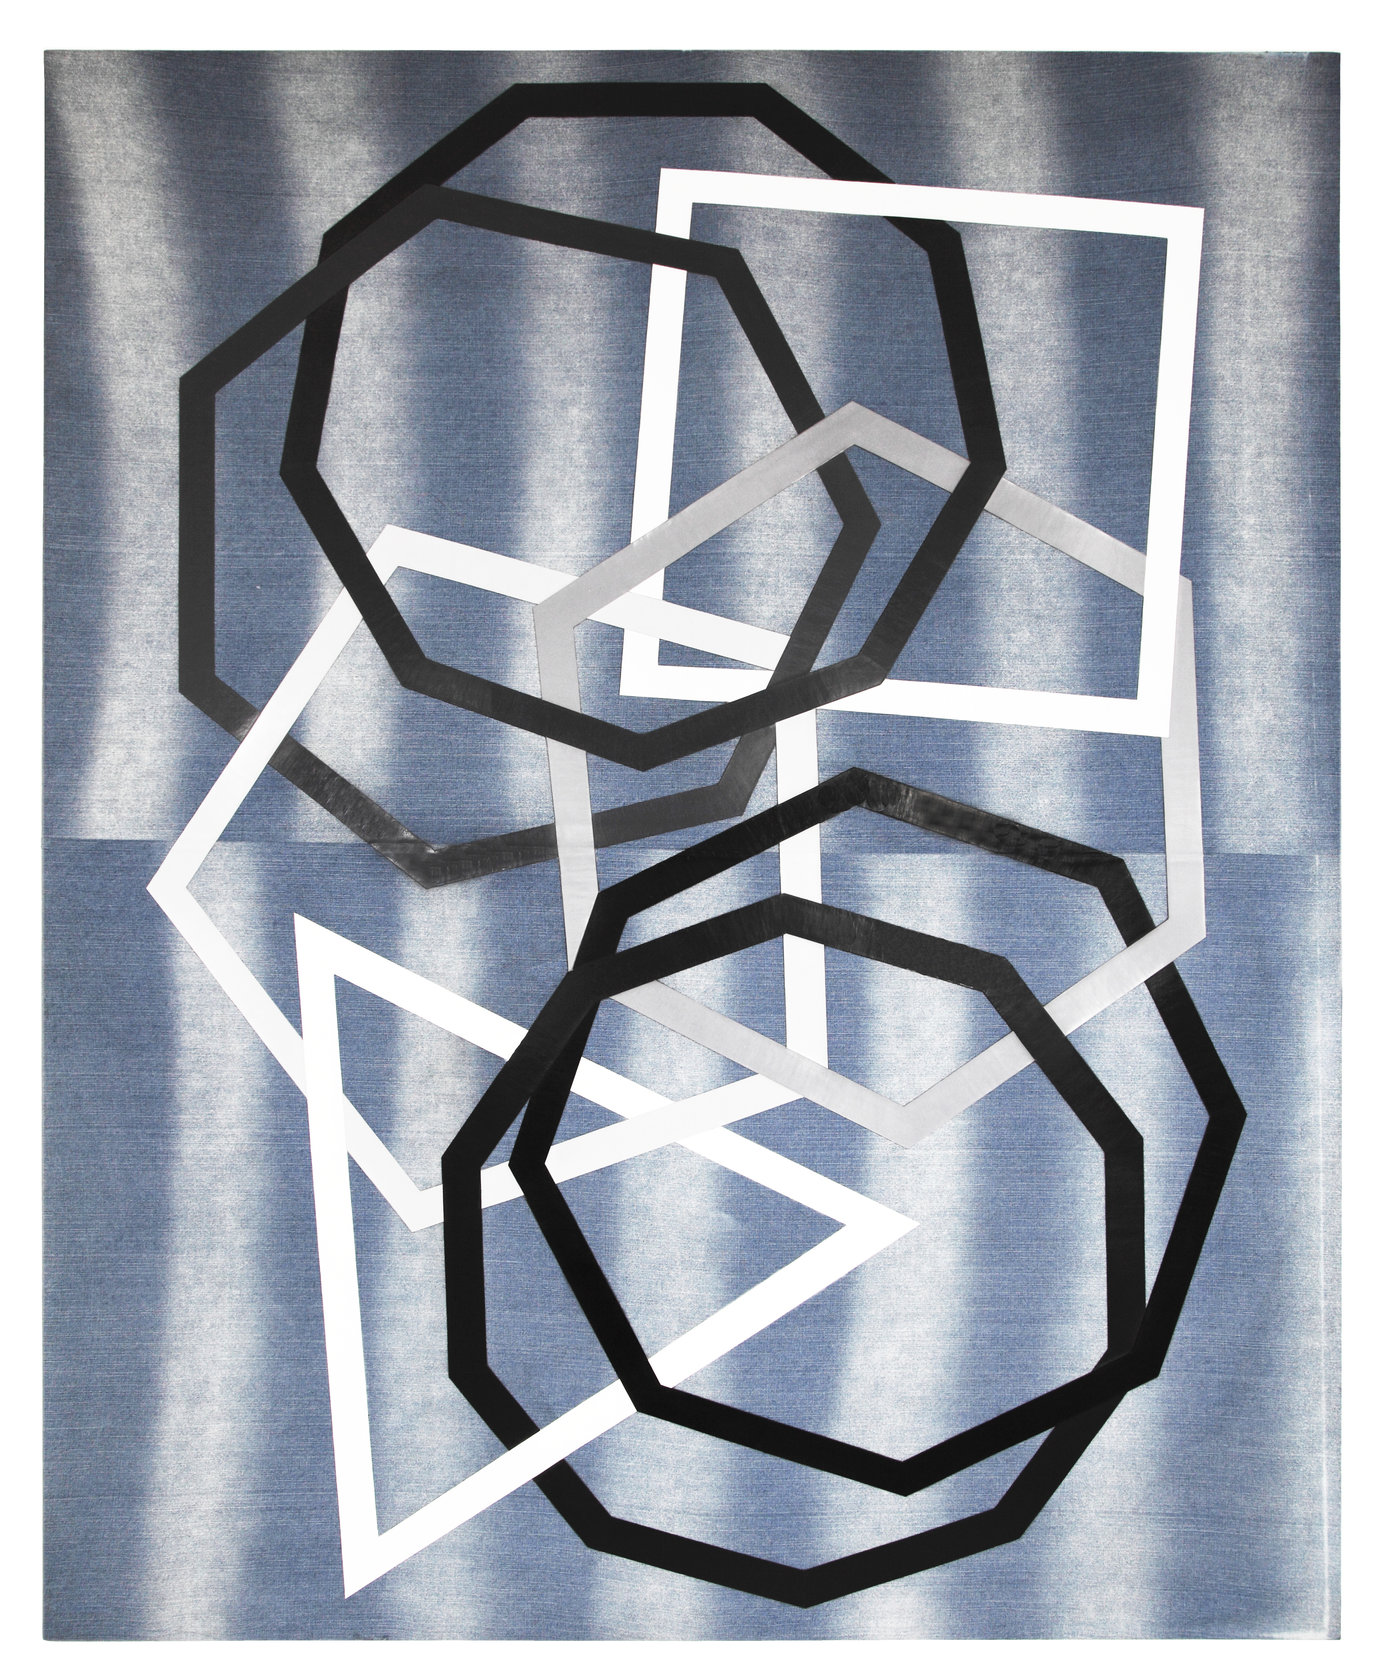 acrylic on denim, 250 x 200 x 8 cm, 2012.